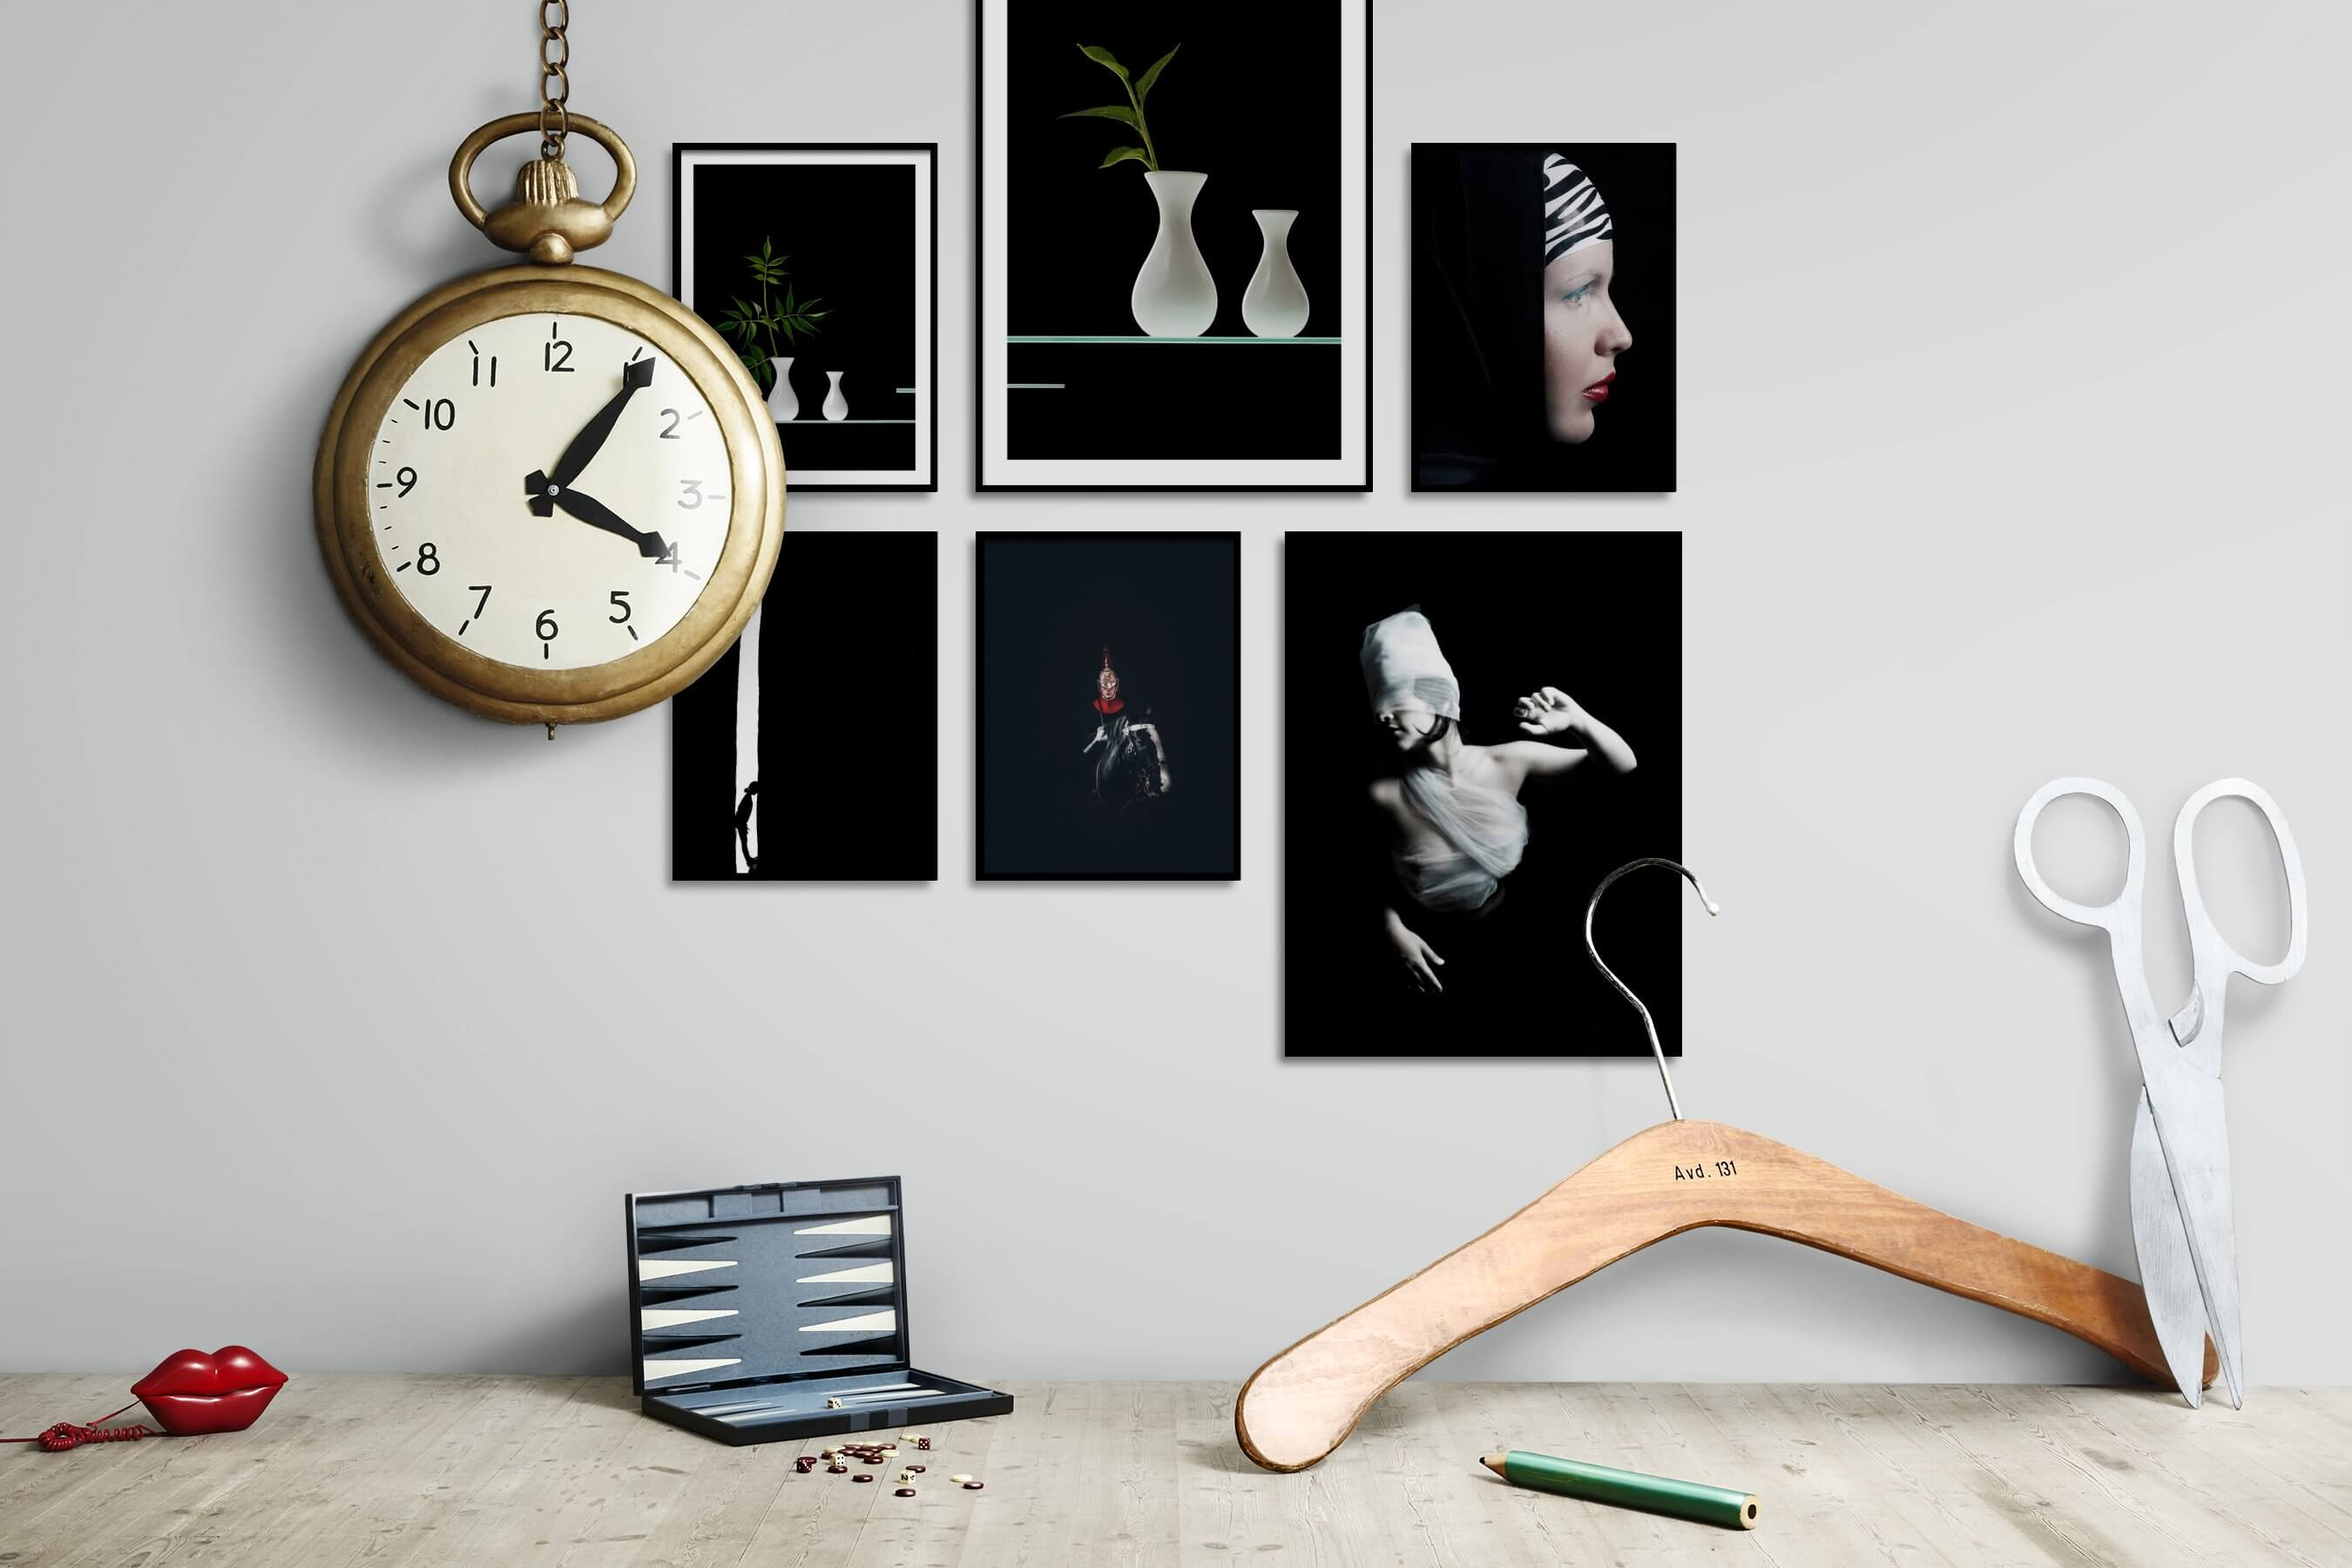 Gallery wall idea with six framed pictures arranged on a wall depicting For the Minimalist, Flowers & Plants, Black & White, Dark Tones, Nature, Animals, Artsy, and Fashion & Beauty